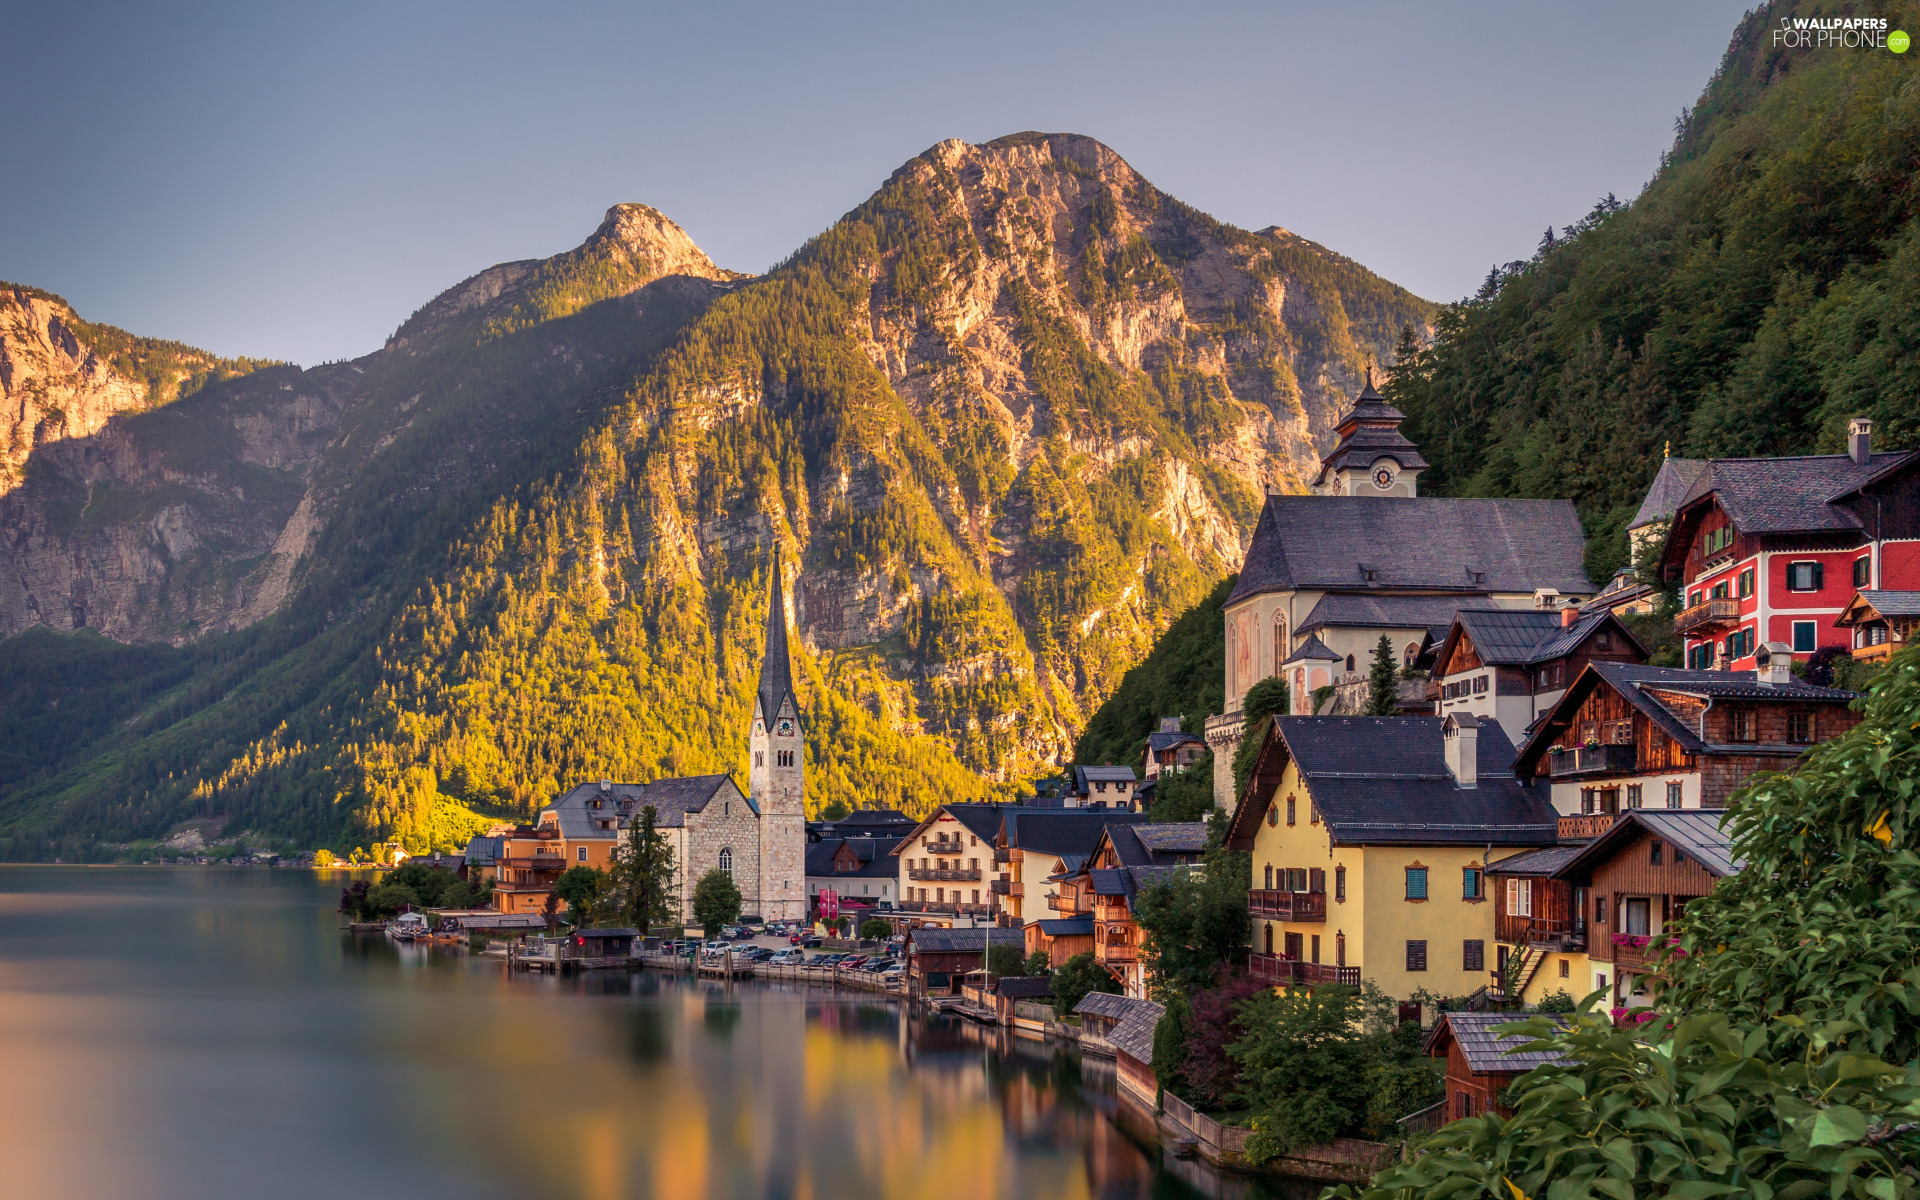 Mountains, Great Sunsets, Hallstattersee Lake, Houses, Hallstatt, Austria, viewes, Town, trees